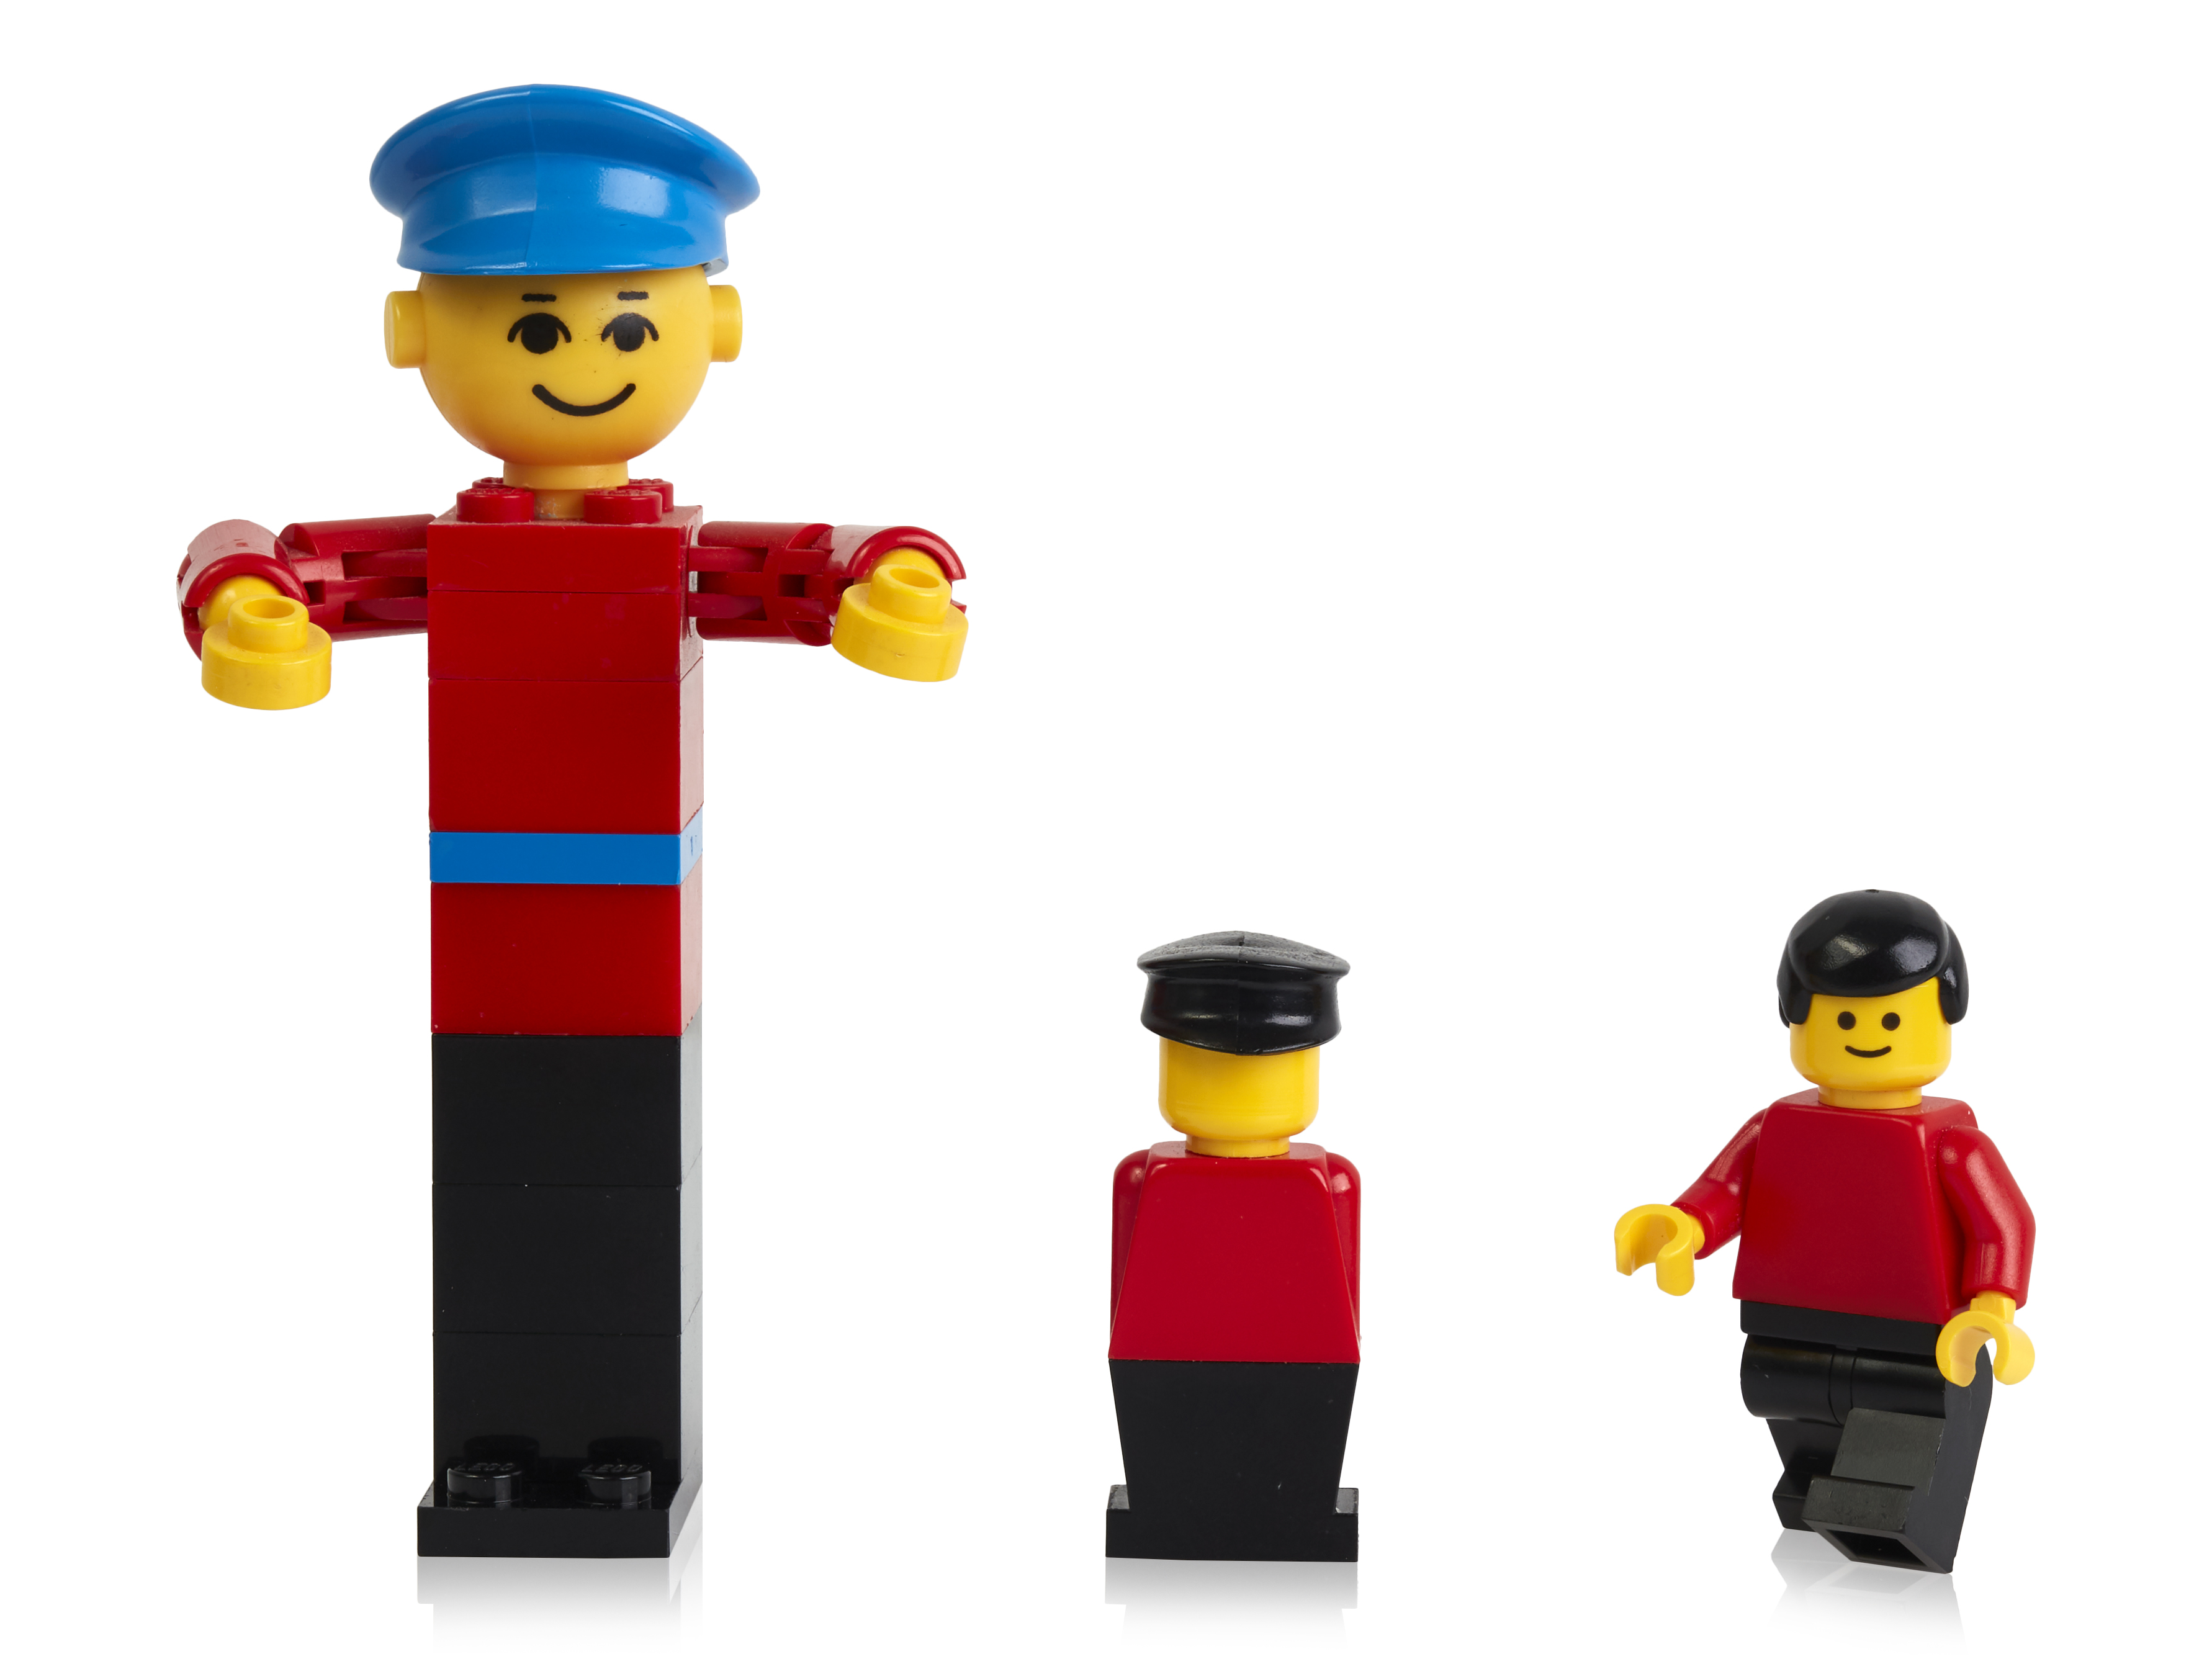 lego-building-figure-from-1974-stage-extra-from-1975-and-minifigure-from-1978.jpg